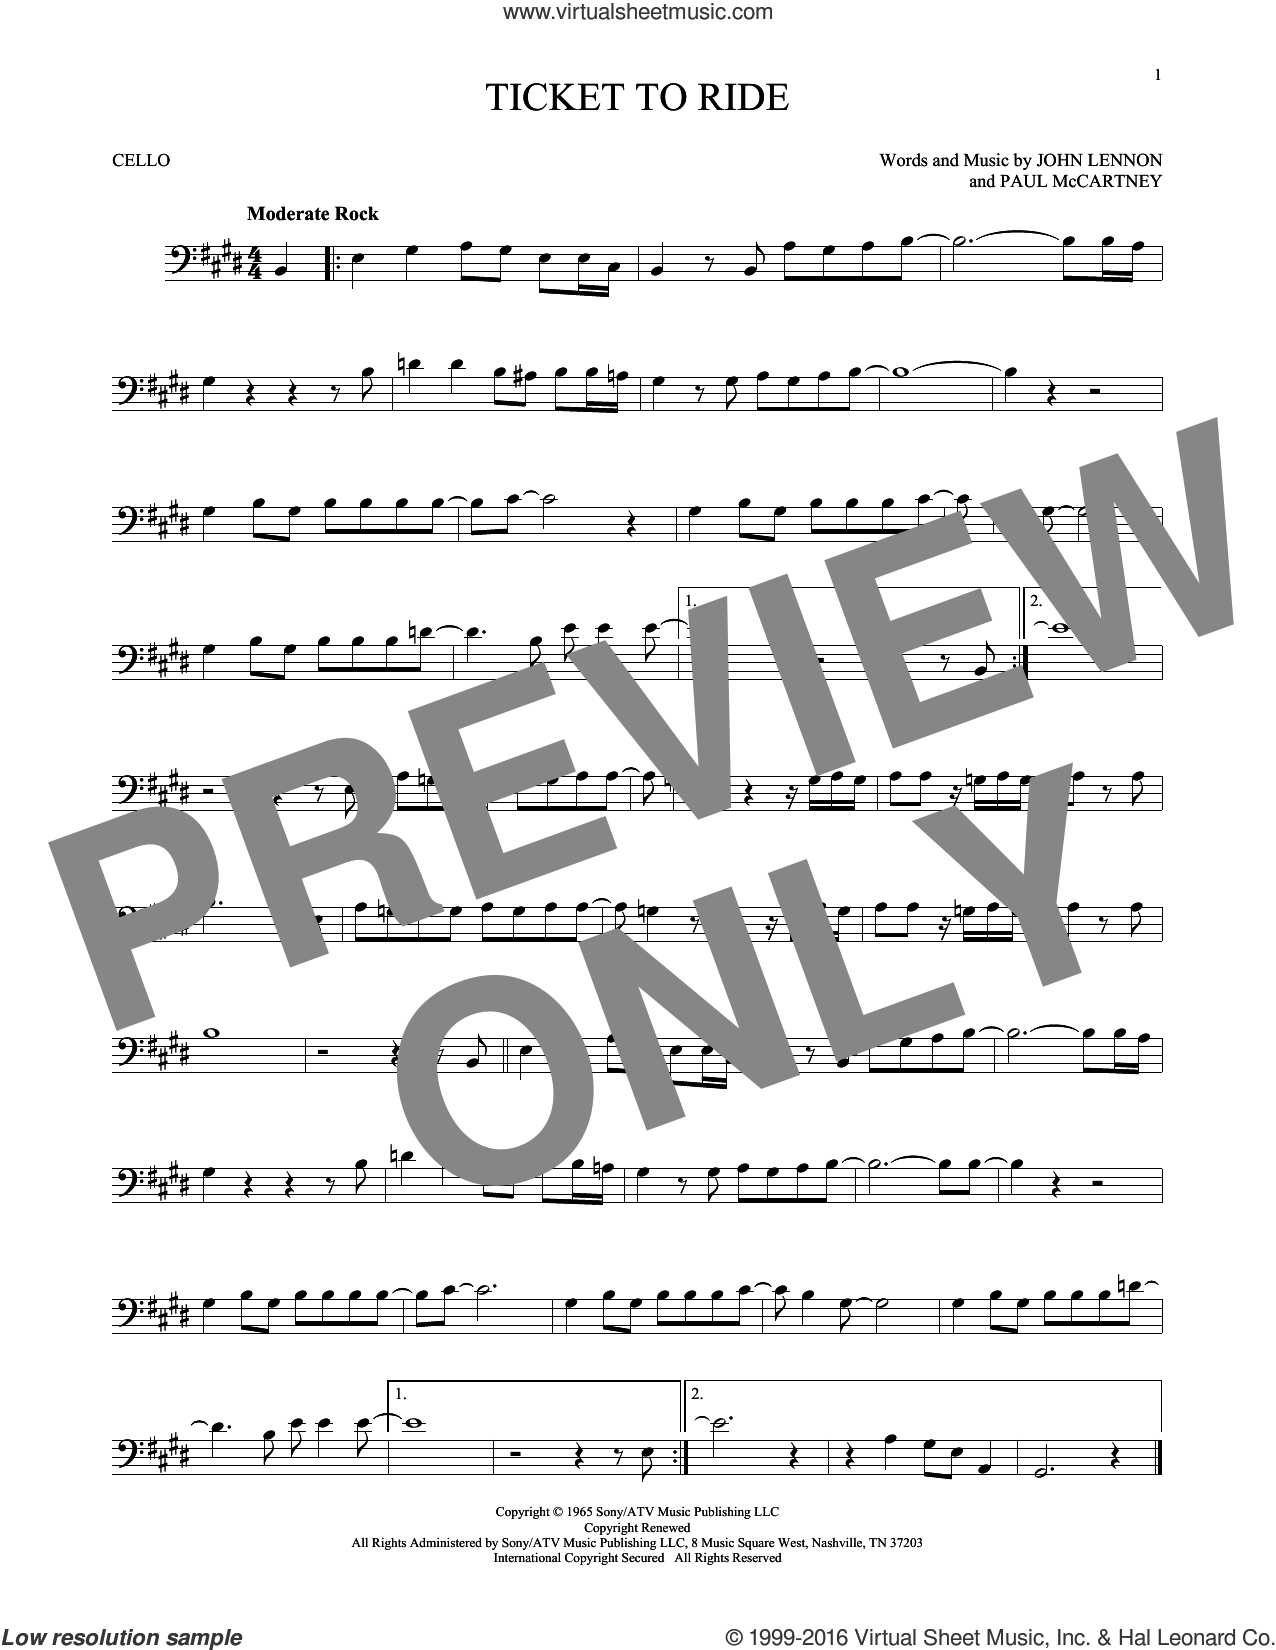 Ticket To Ride sheet music for cello solo by The Beatles, John Lennon and Paul McCartney, intermediate skill level